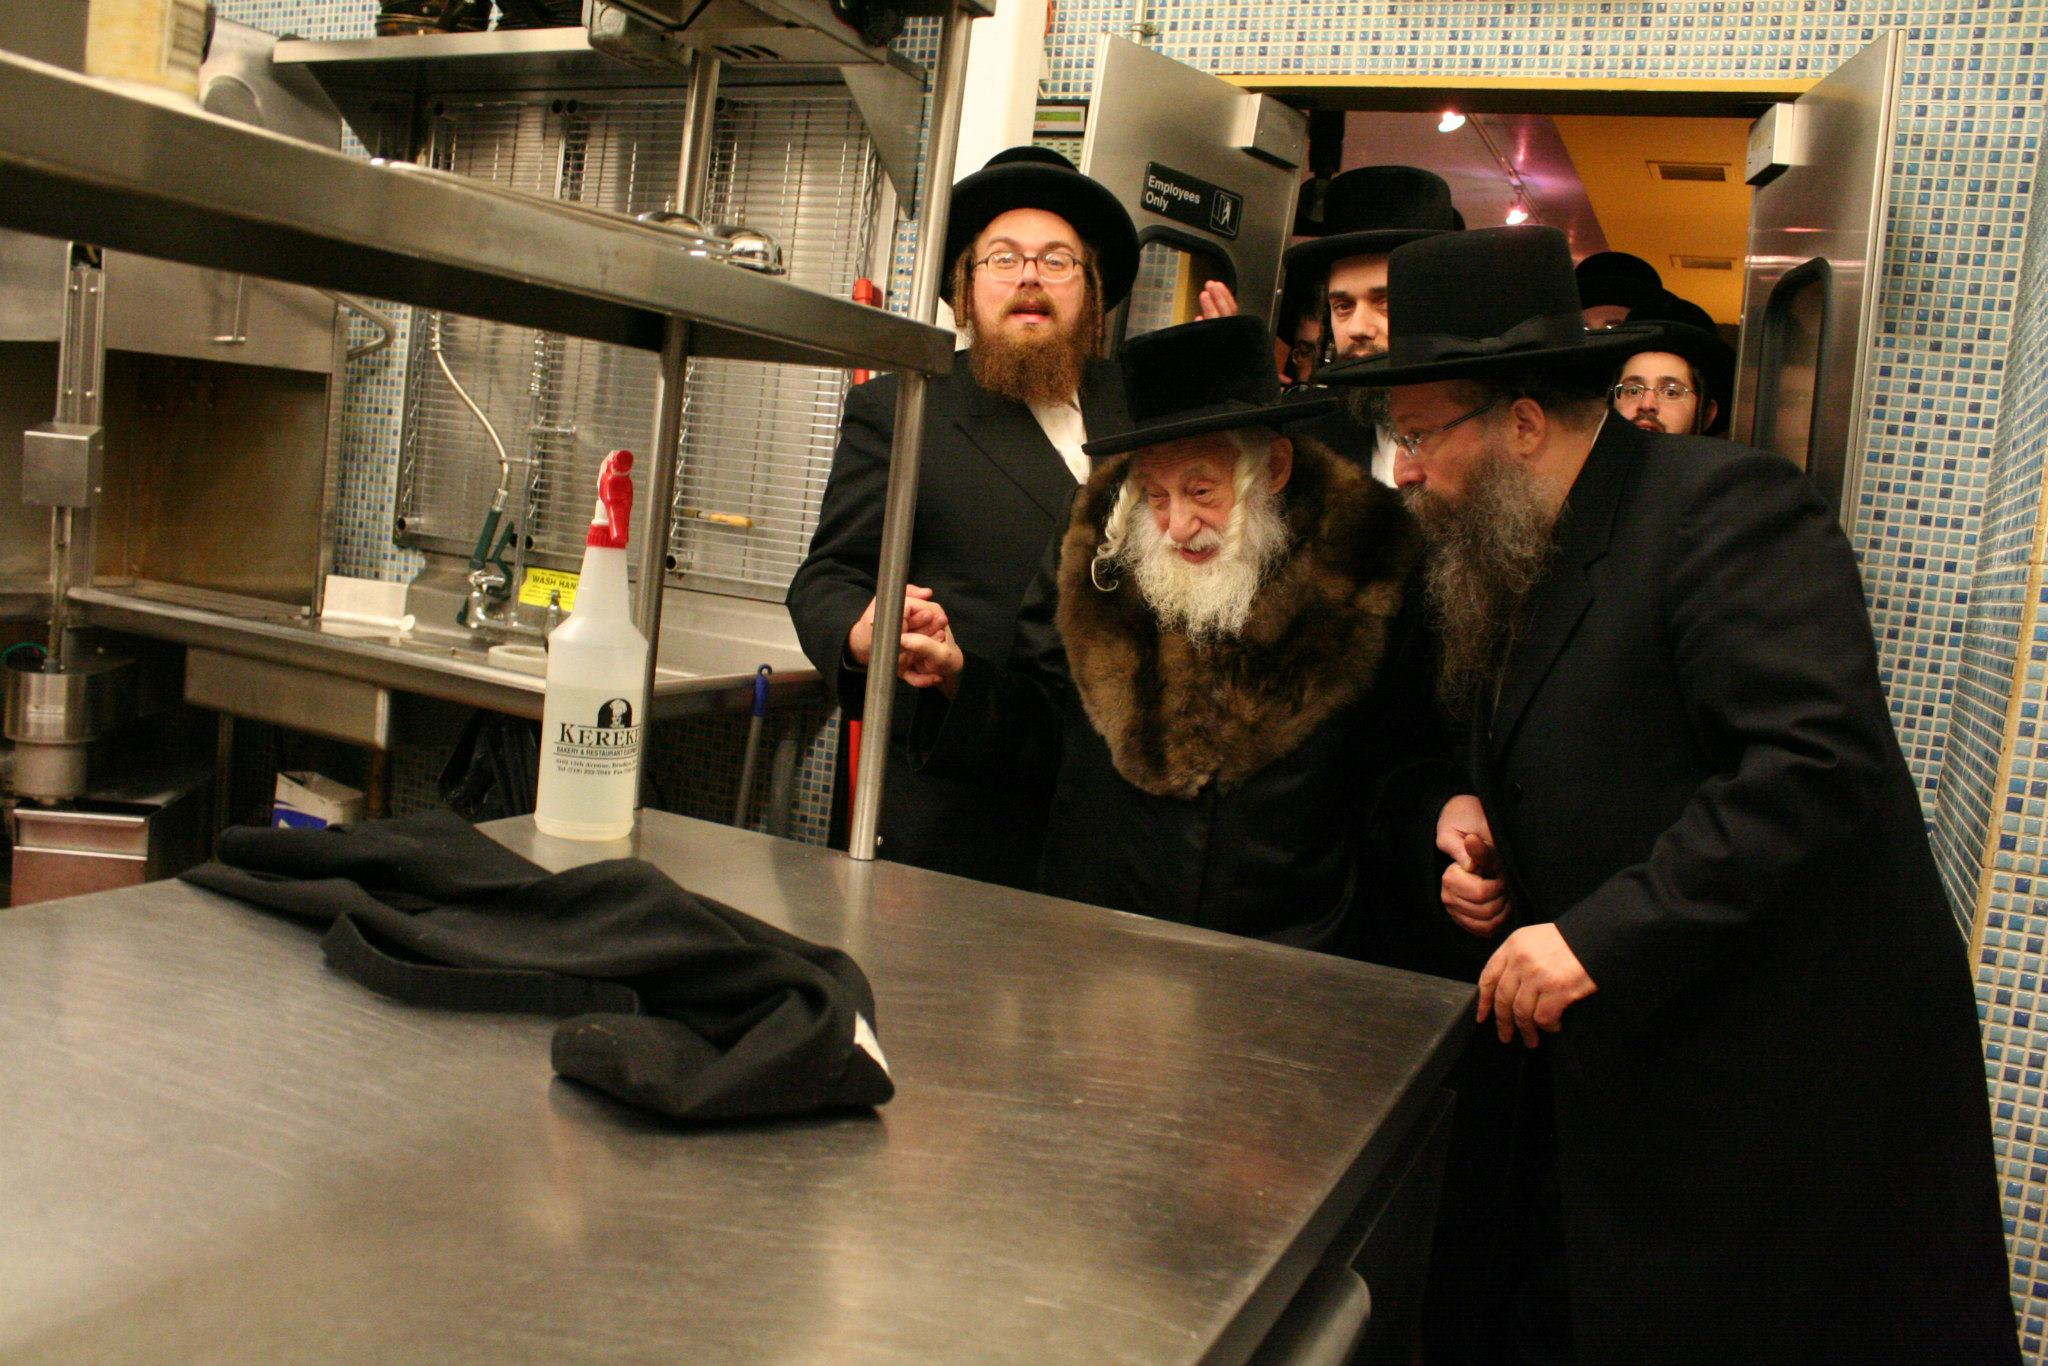 Masbia_Supporter__Skulen_Rebbe__Rabbi_Israel_Abraham_Portugal_Affixing_the_Mezuzah_on_the_Front_Door_of_Masbia_of_Flatbush4.jpg